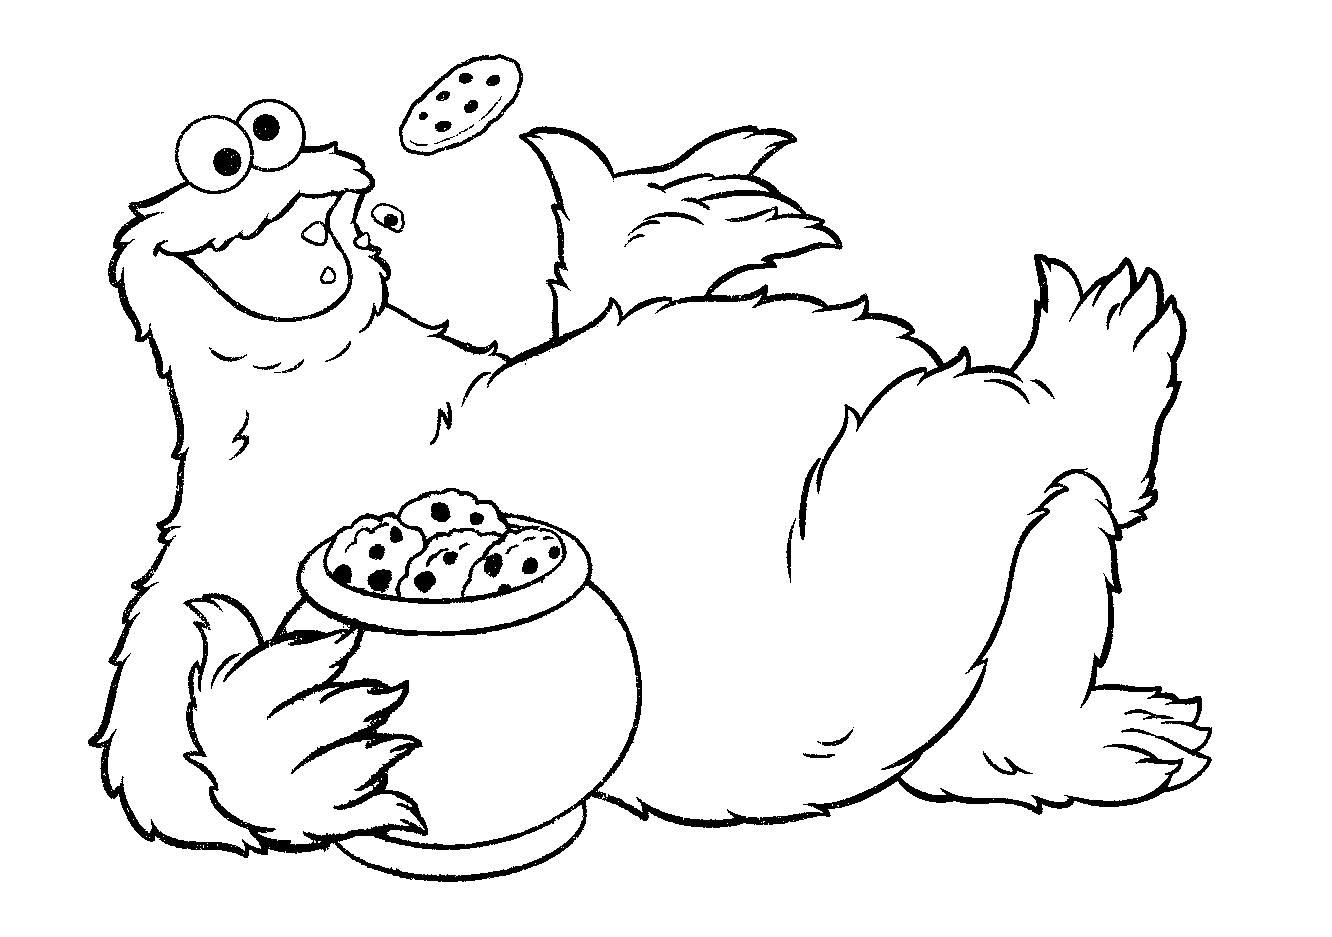 Cookie Monster / Cookie Jar (Coloring Pages) Coloring